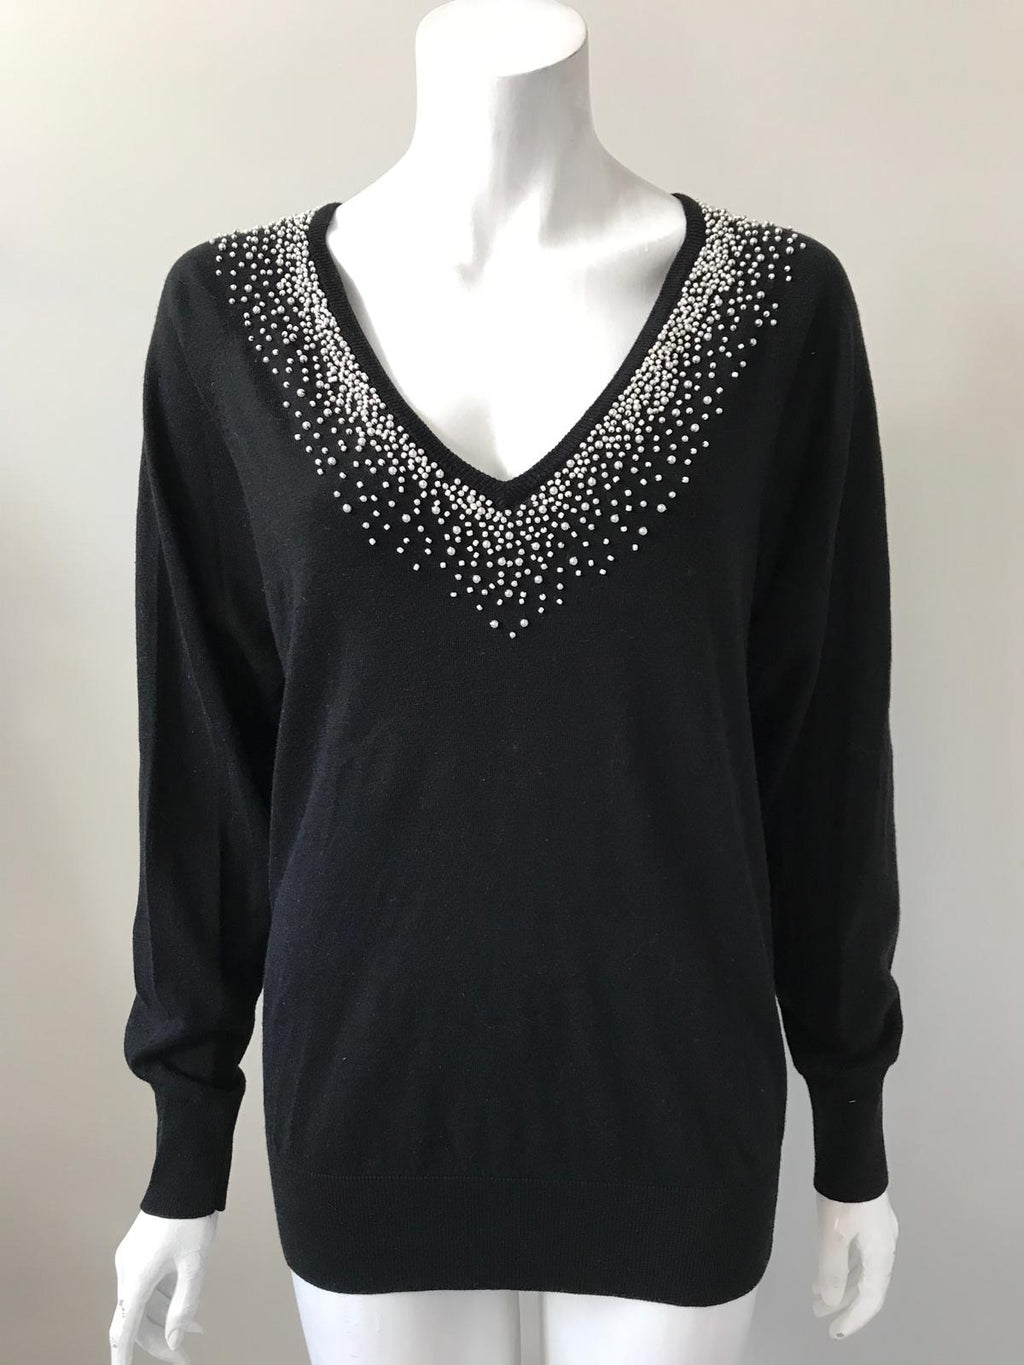 French Connection Black Pearl V-Neck Sweater Size S